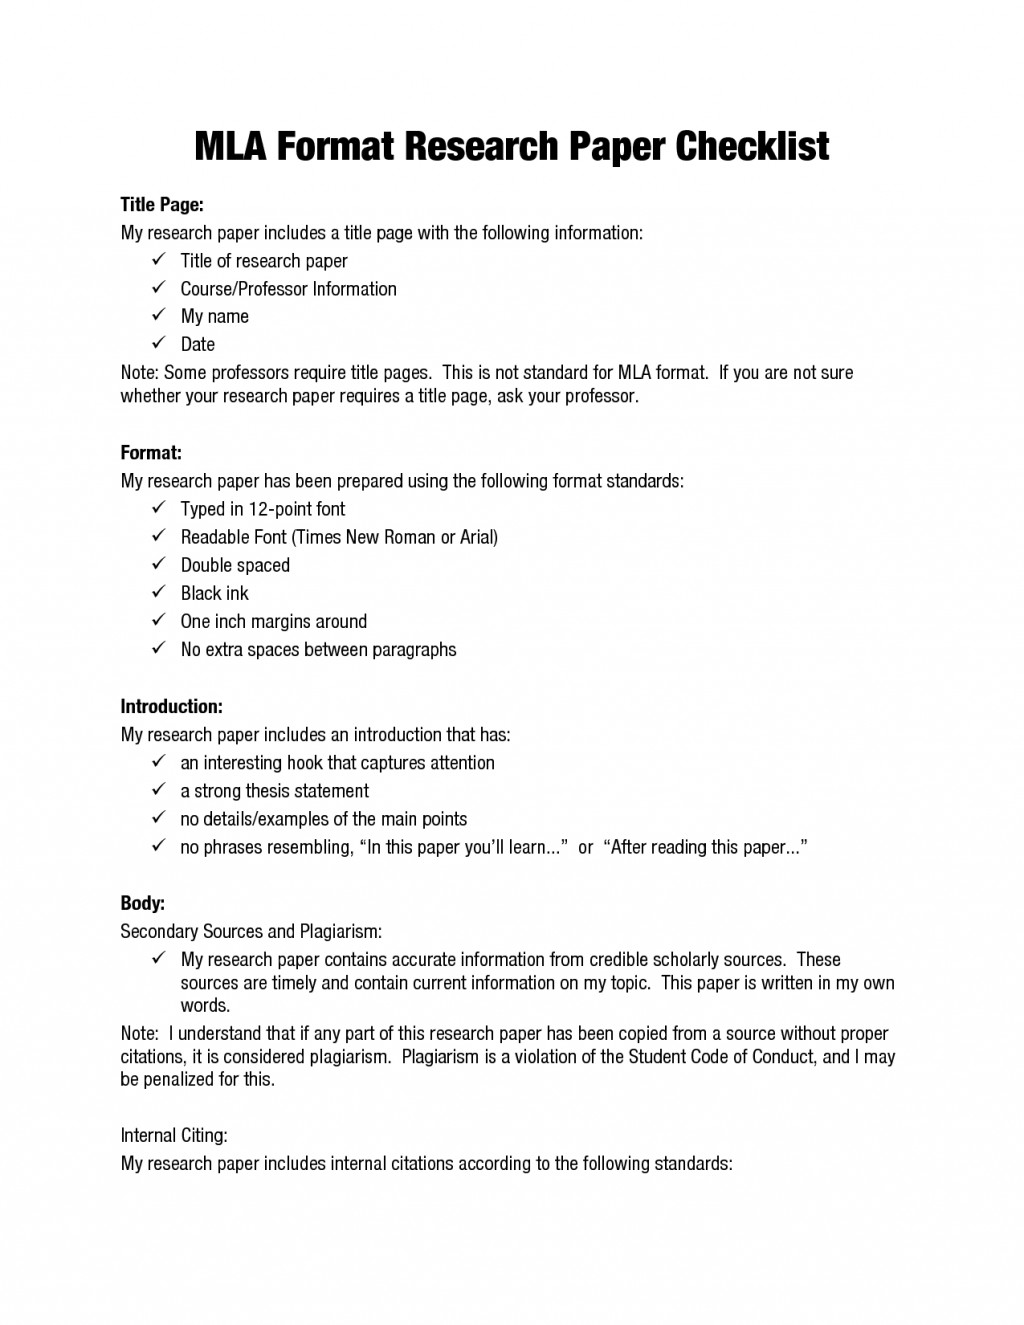 001 Research Paper Mla Format Singular Papers Checklist Outline Template Large